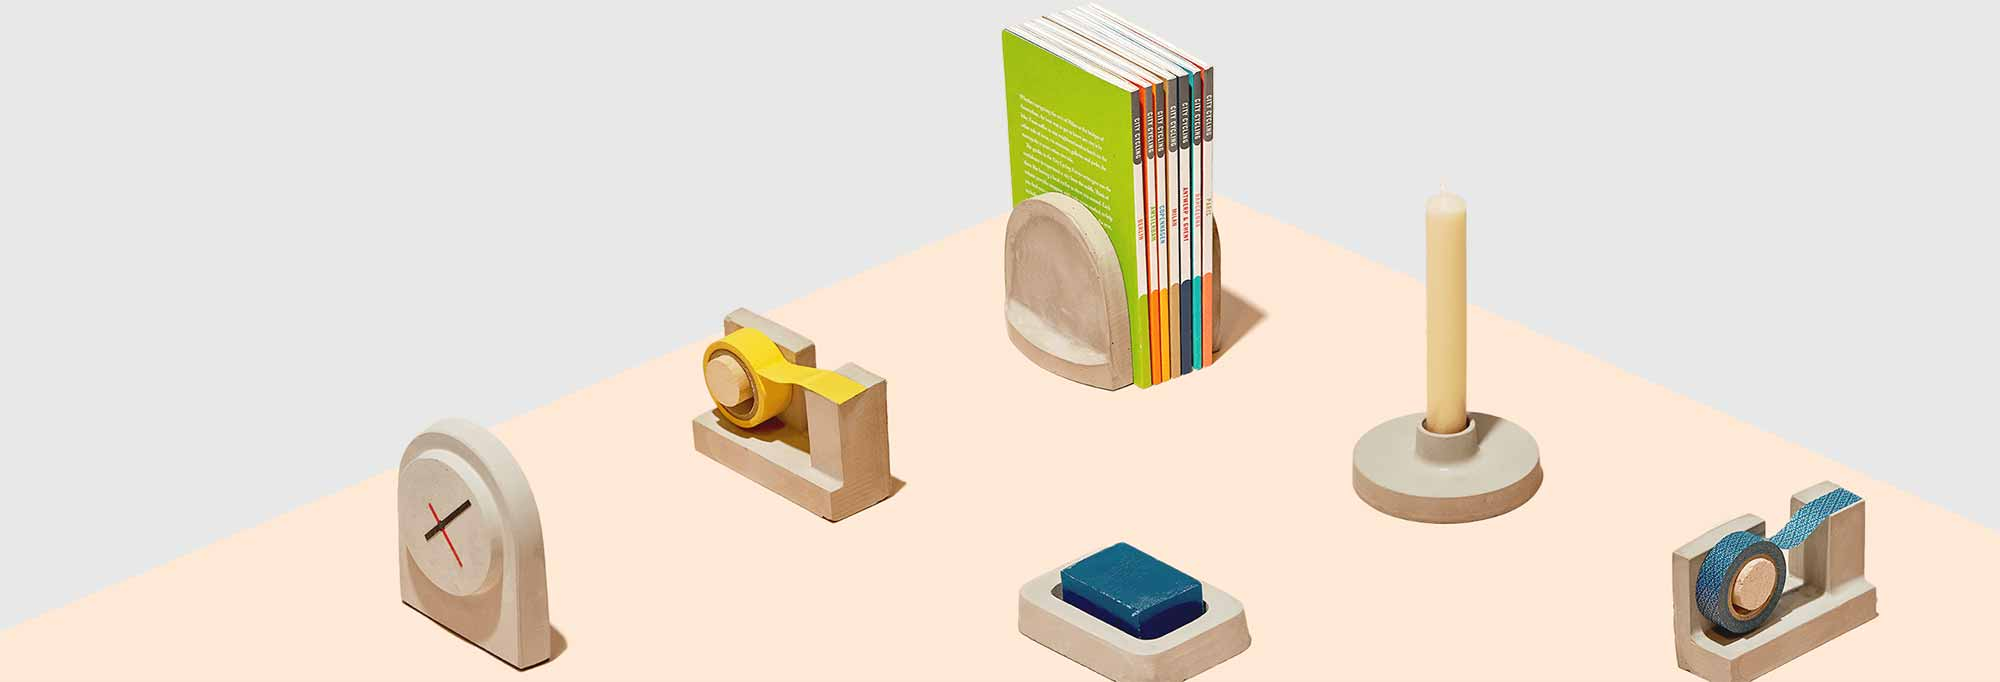 collection of objects made with FormBox